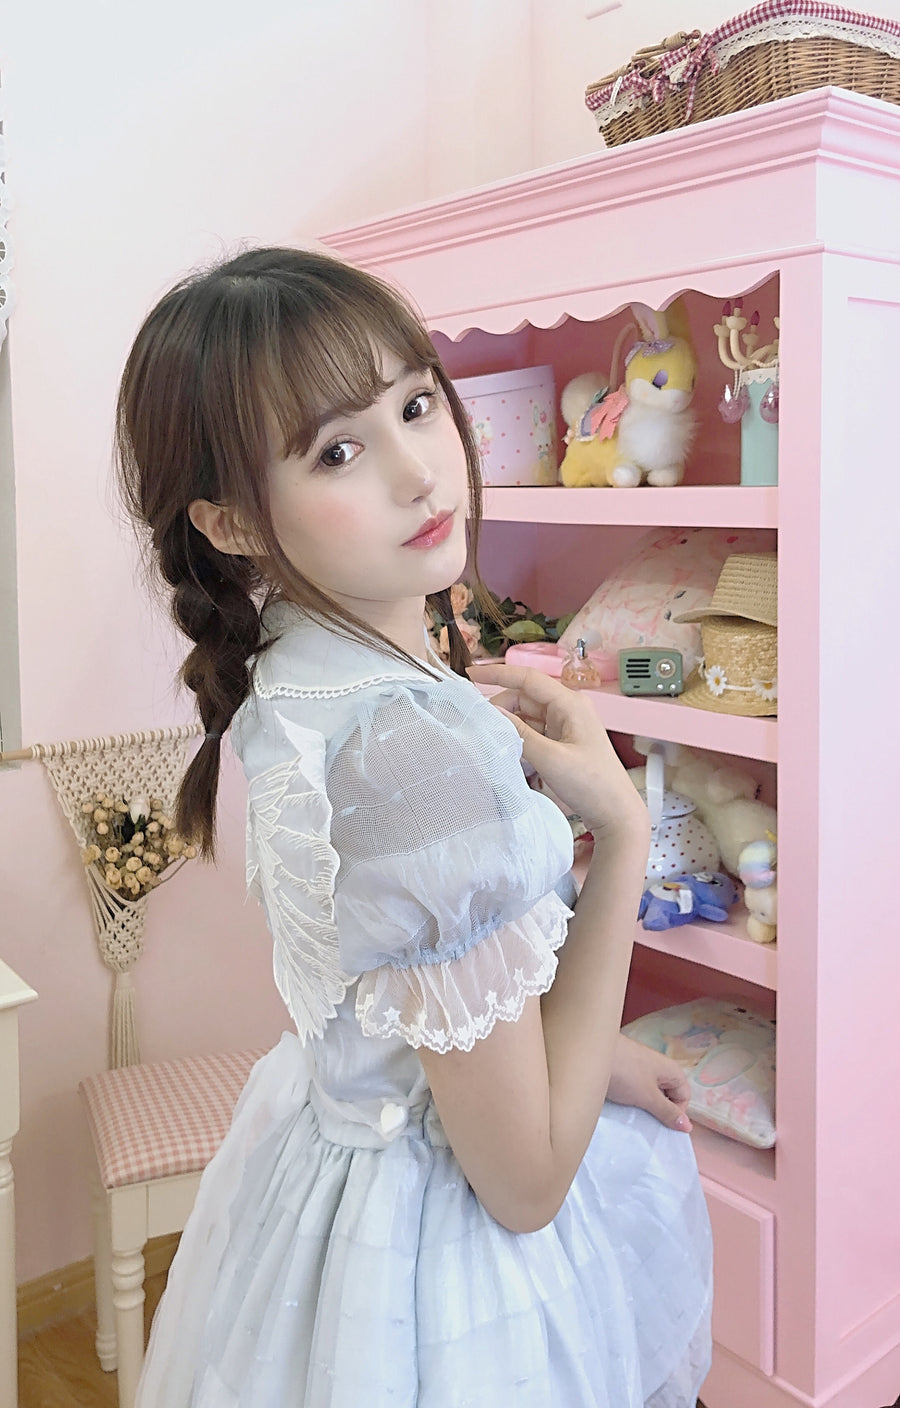 [12 Studio] You Are My Cupid 3D Wing Babydoll Dress - Peiliee Shop